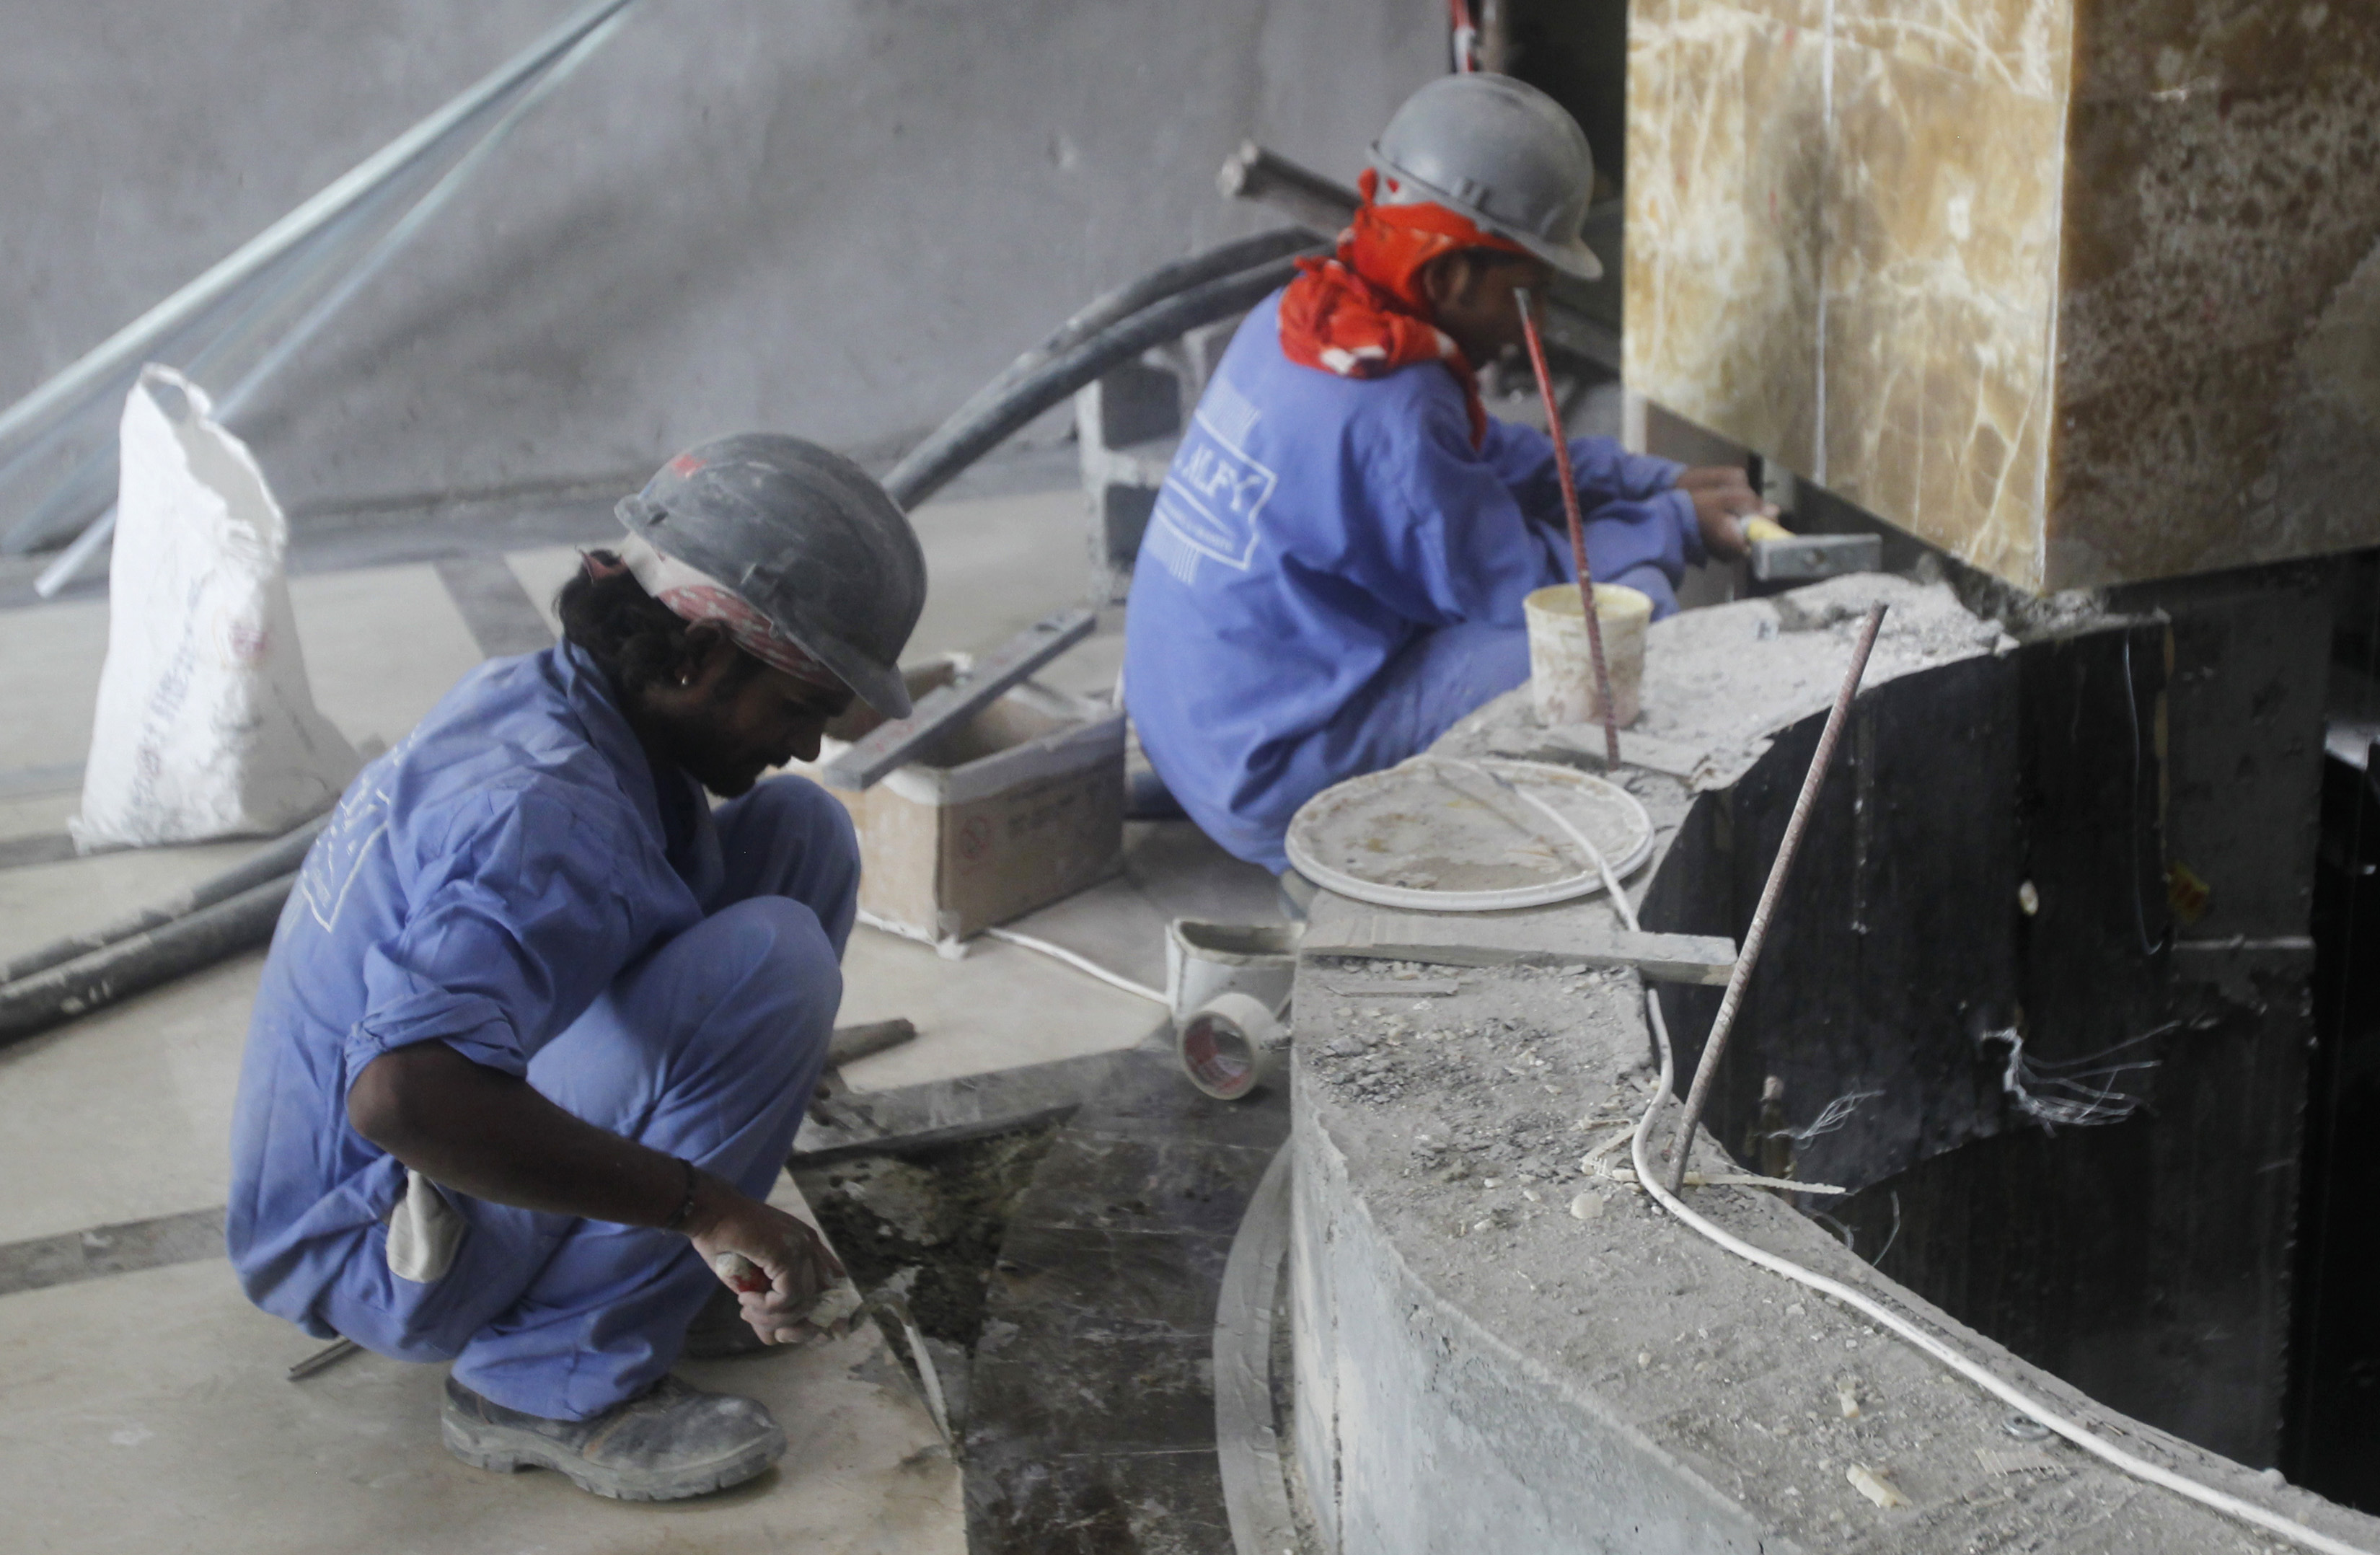 Labourers work at a construction site in Doha June 18, 2012.